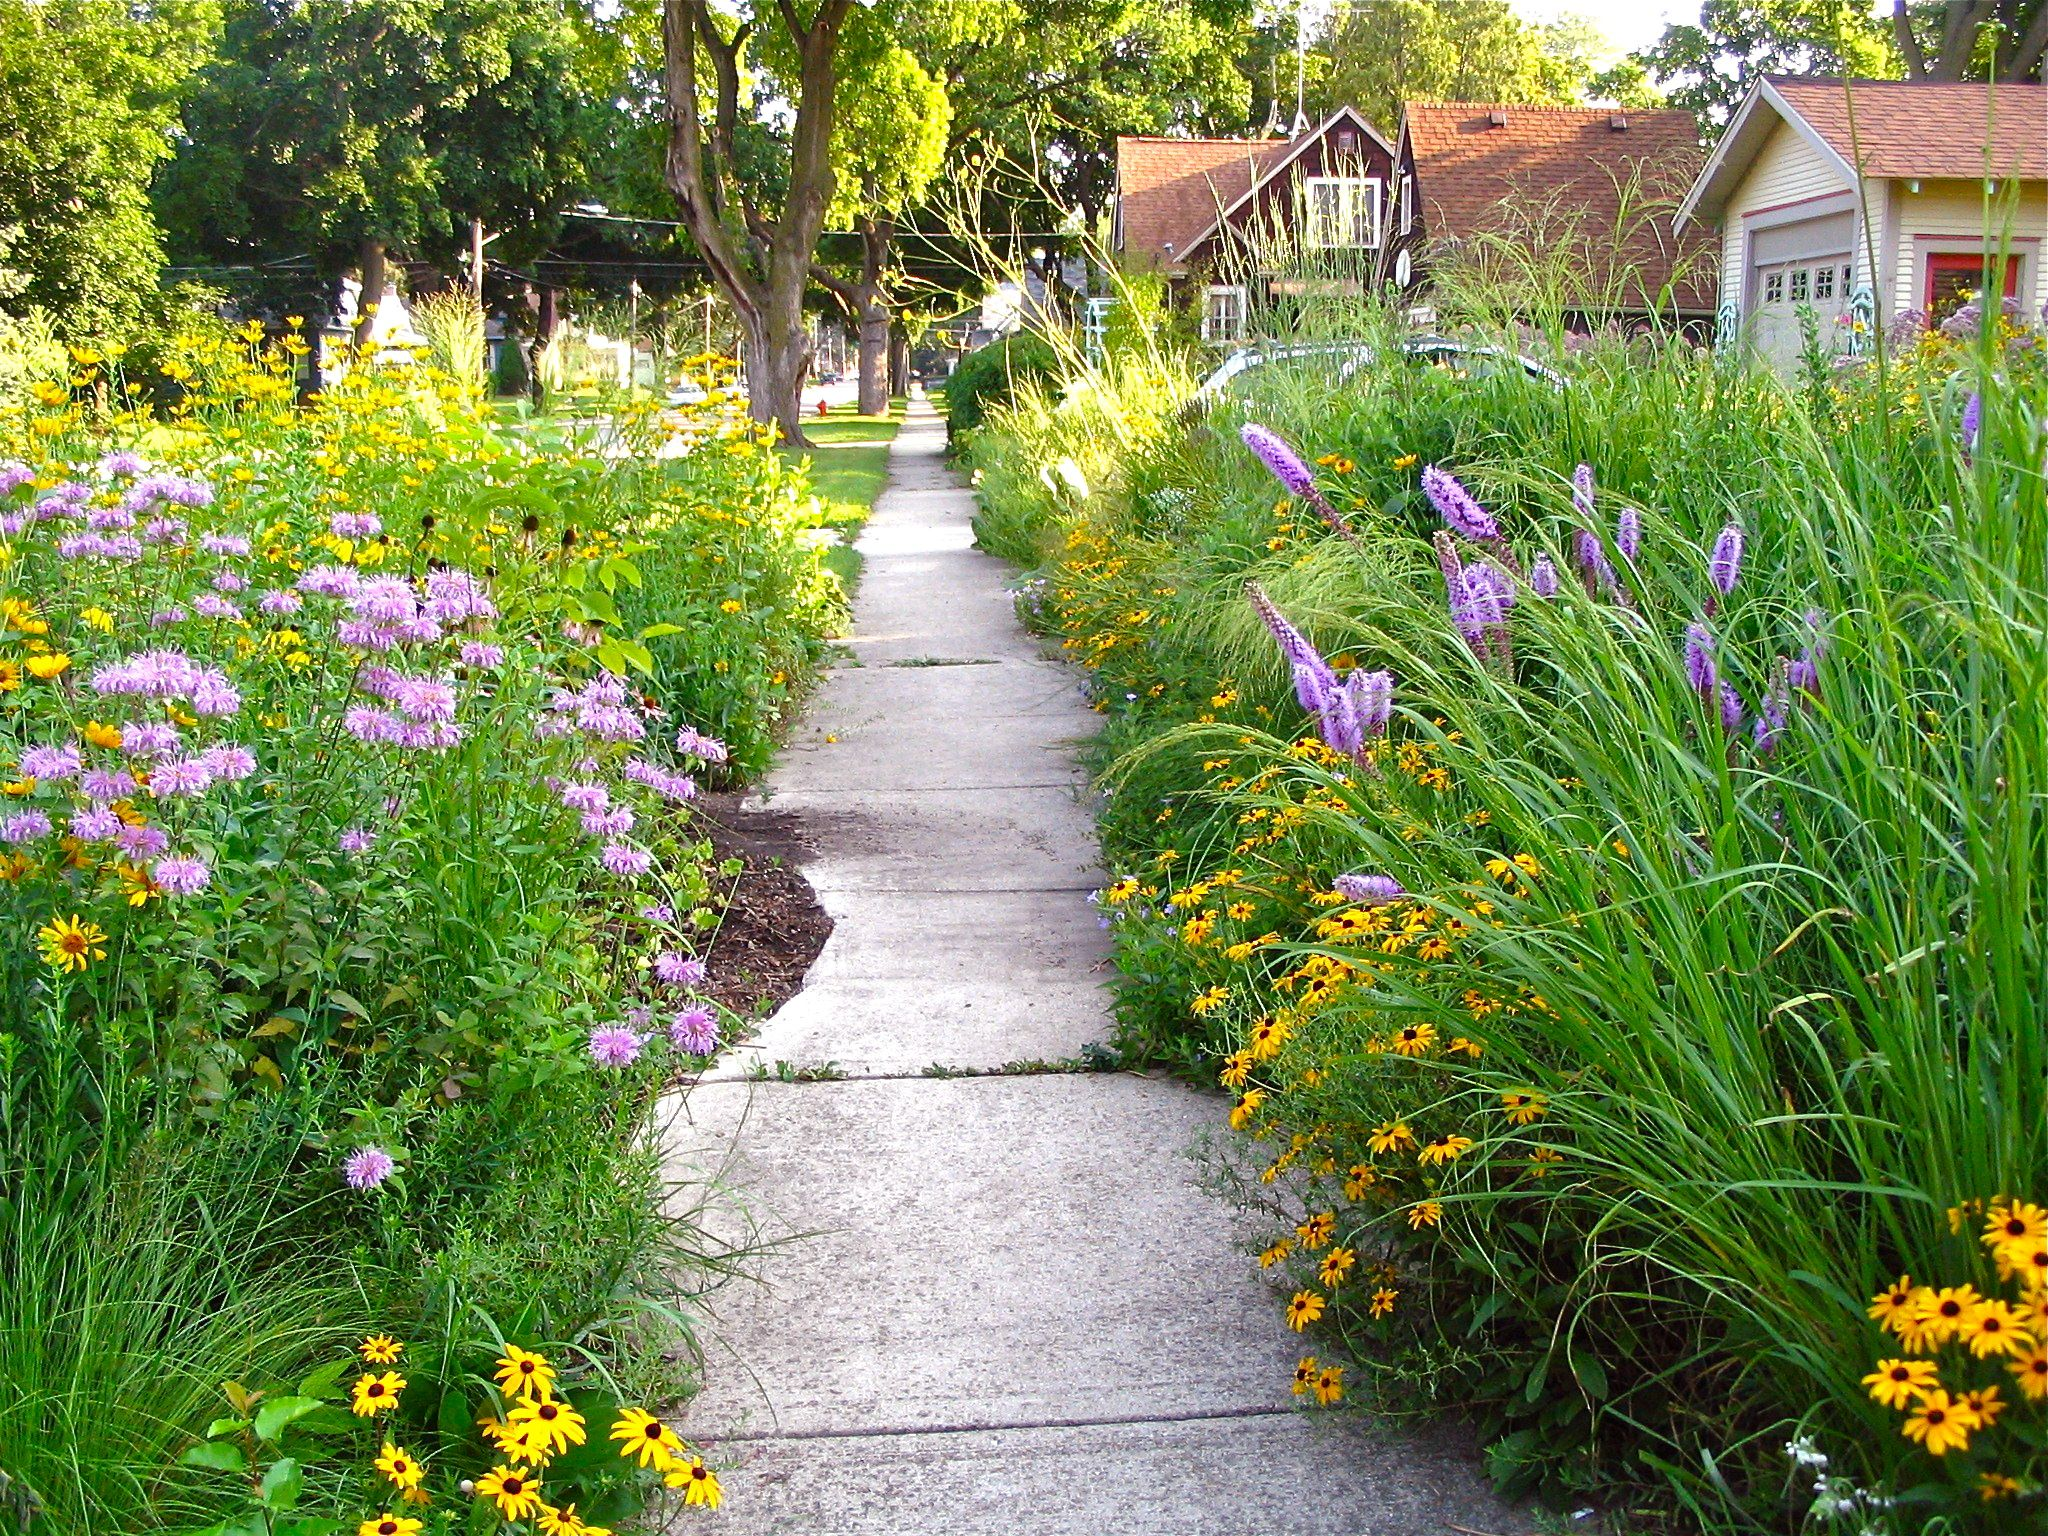 Pin by mary klees on curb appeal pinterest for Garden design midwest